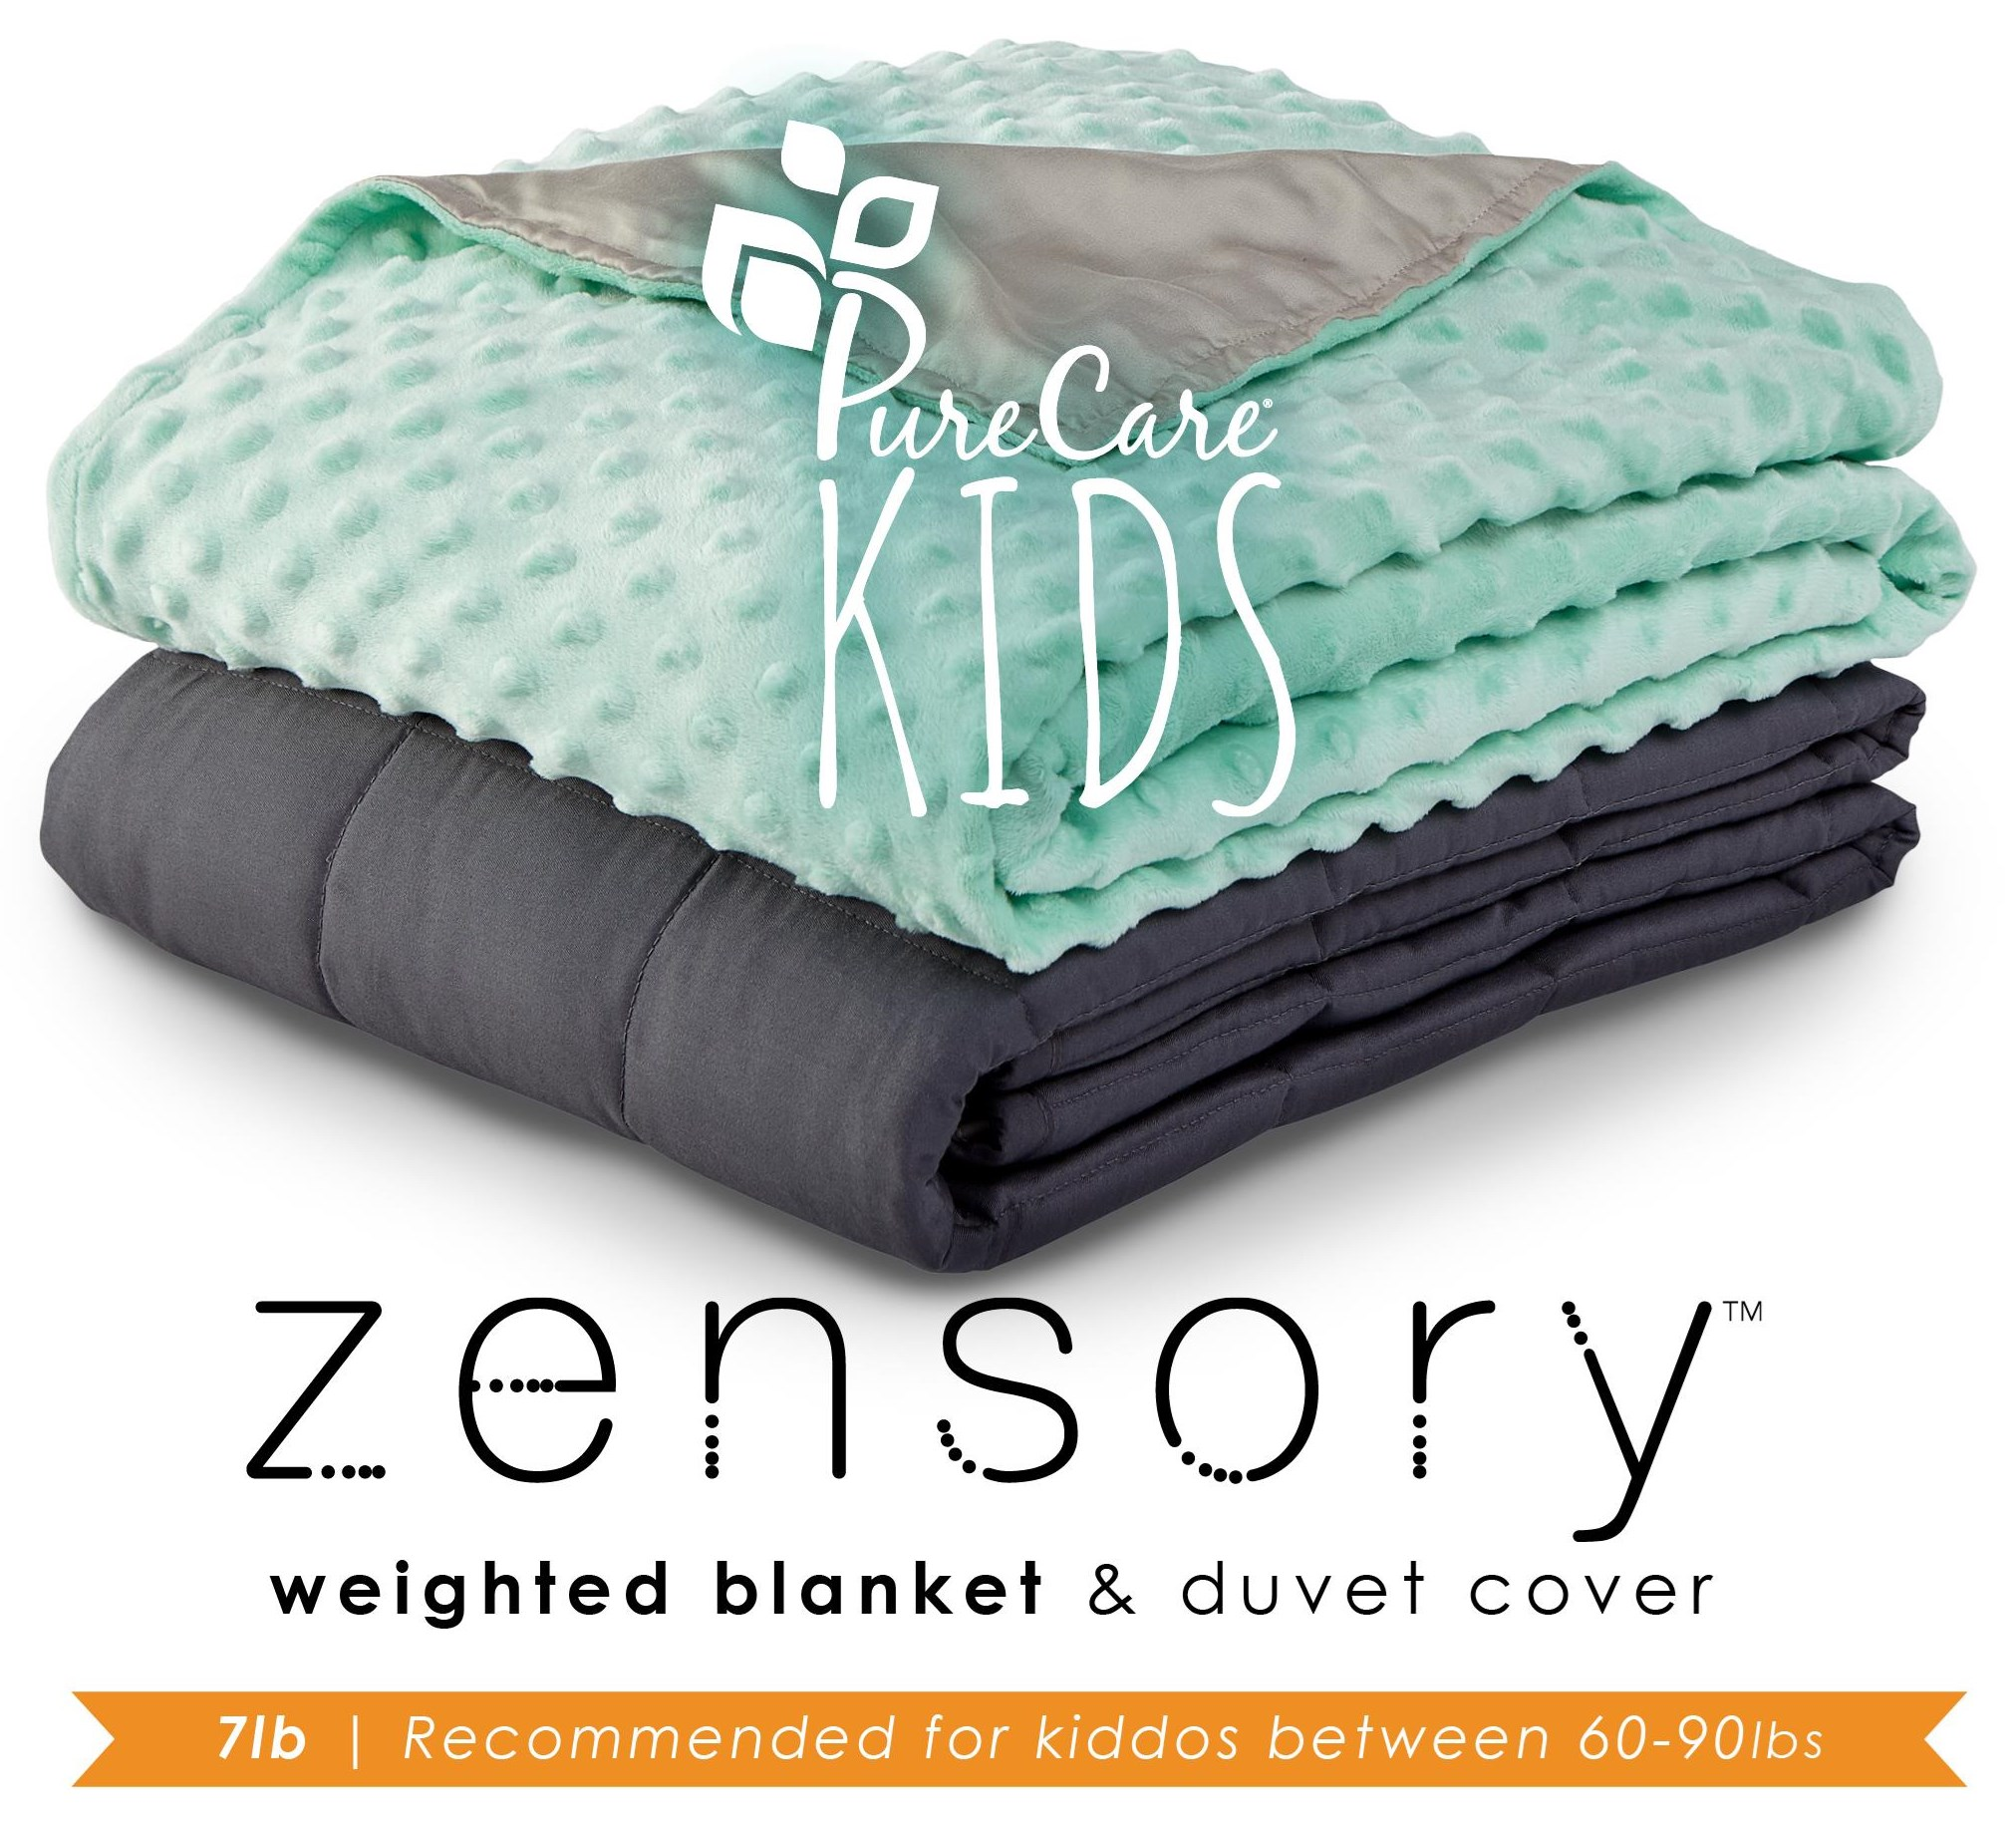 Zensory Kids Weighted Blanket at Ultimate Mattress